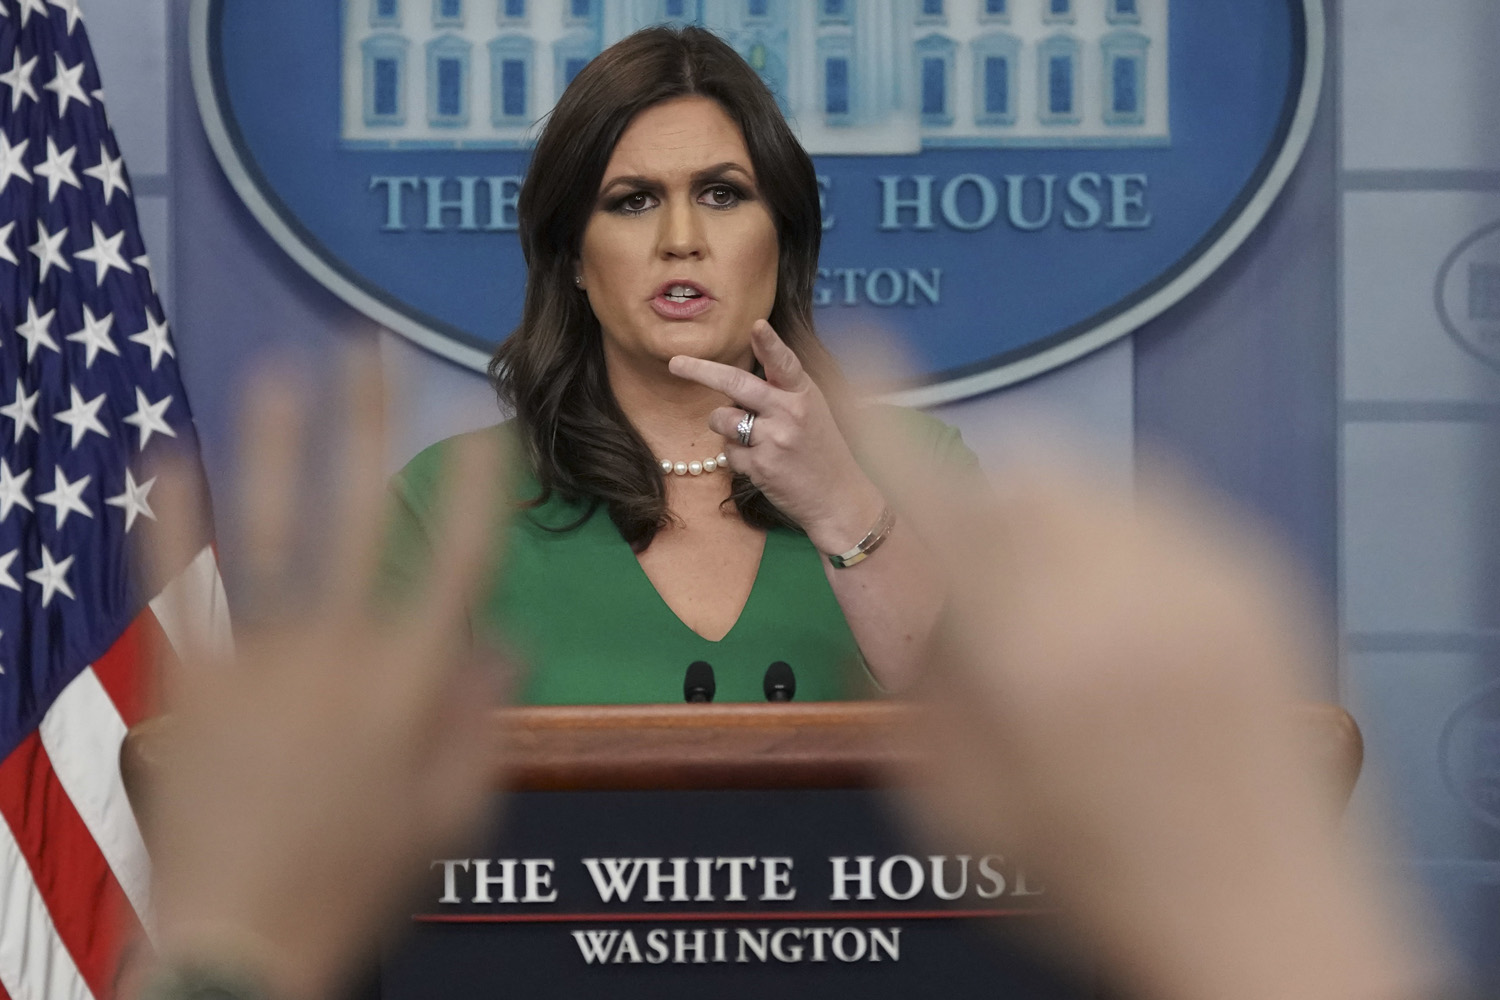 White House press secretary Sarah Huckabee Sanders gestures as she takes questions from the media on Nov. 16, 2017. (Pablo Martinez Monsivais/AP)